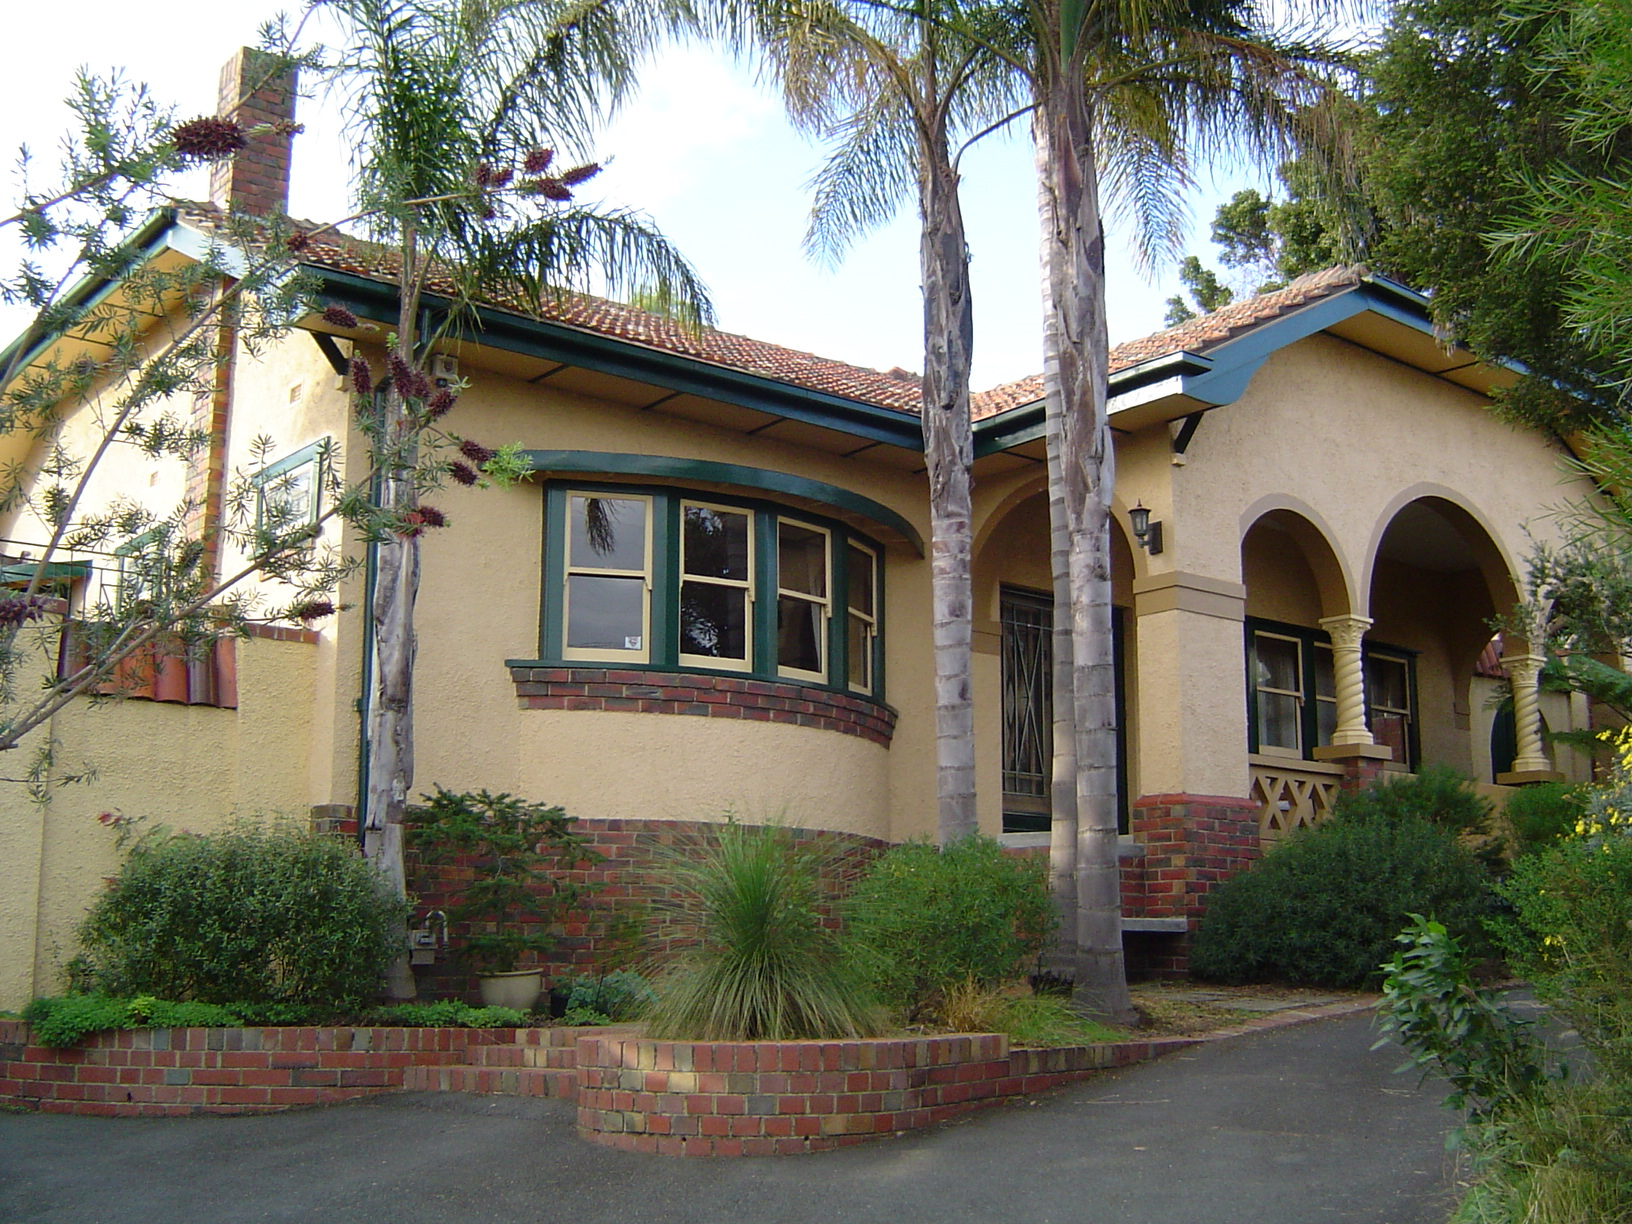 Spanish Style Mission House